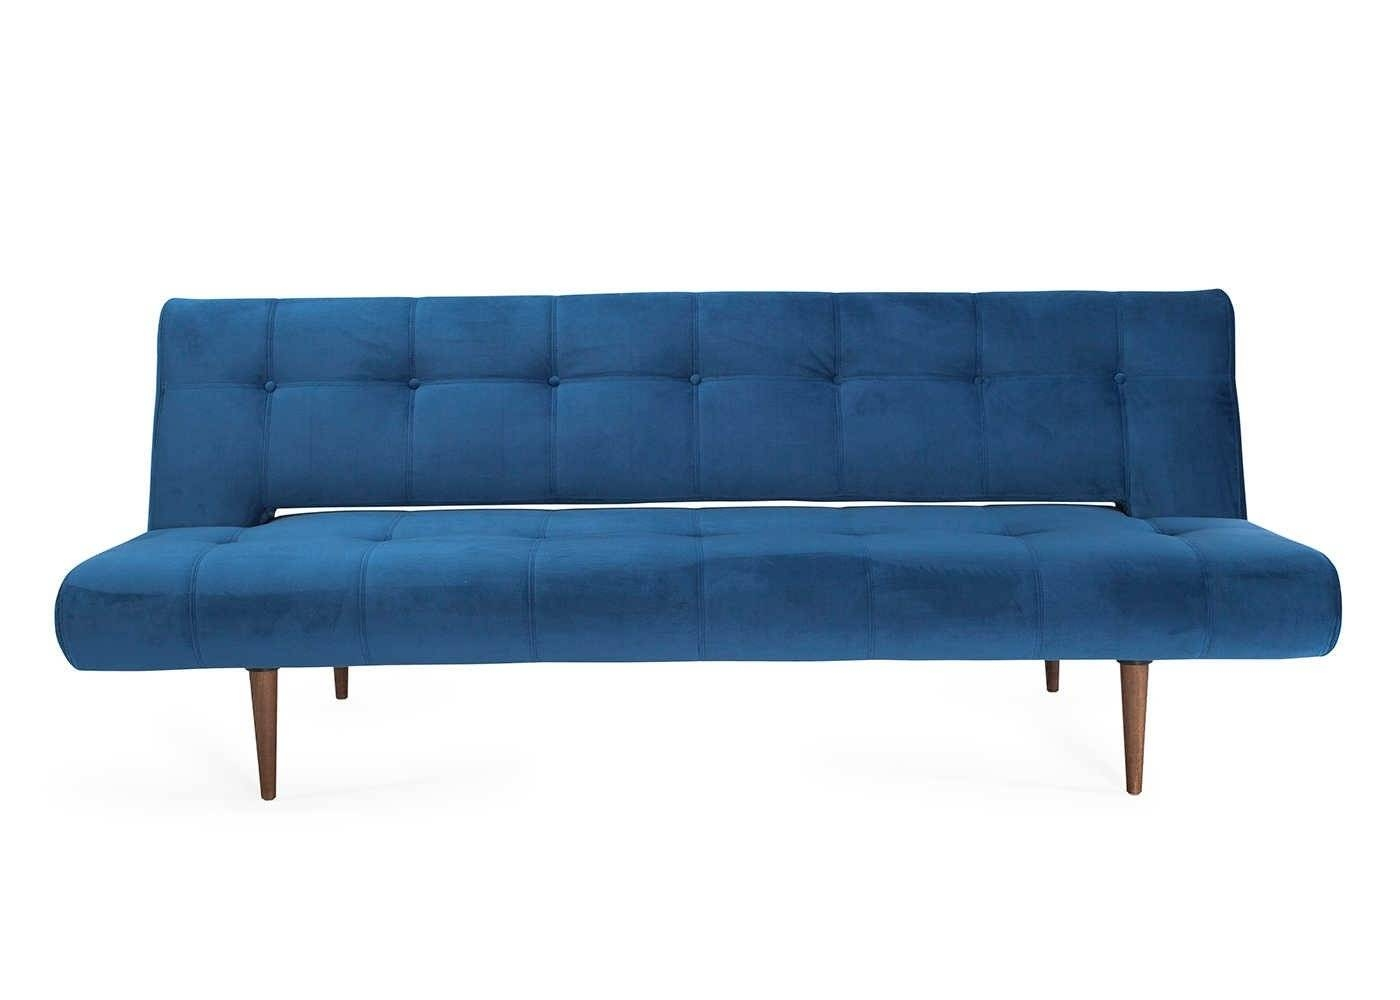 Hinge Luxe Sofa Bed Dessin Velvet Royal Blue - Sofa Beds - Sofas with regard to Luxe Sofas (Image 7 of 15)